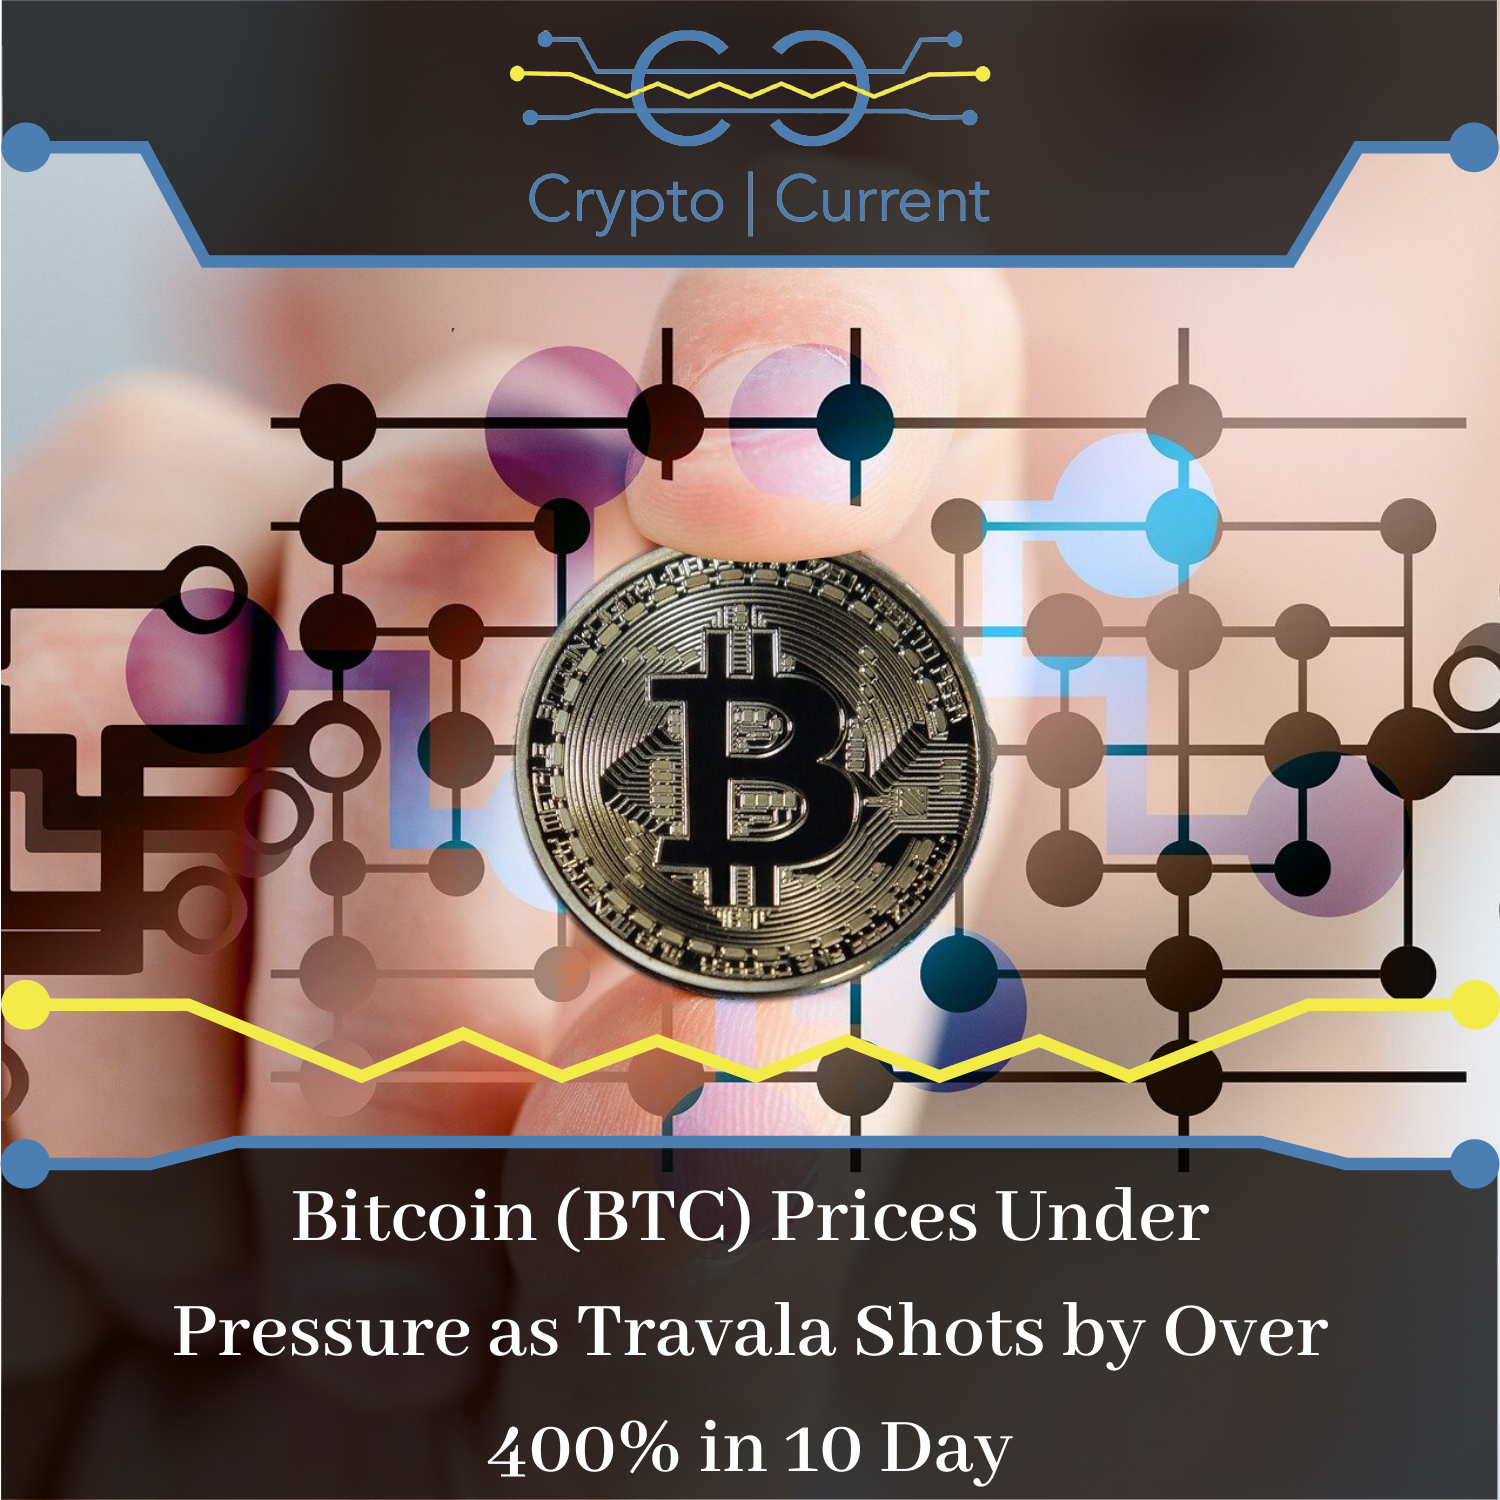 Bitcoin (BTC) Prices Under Pressure as Travala Shots by Over 400% in 10 Day